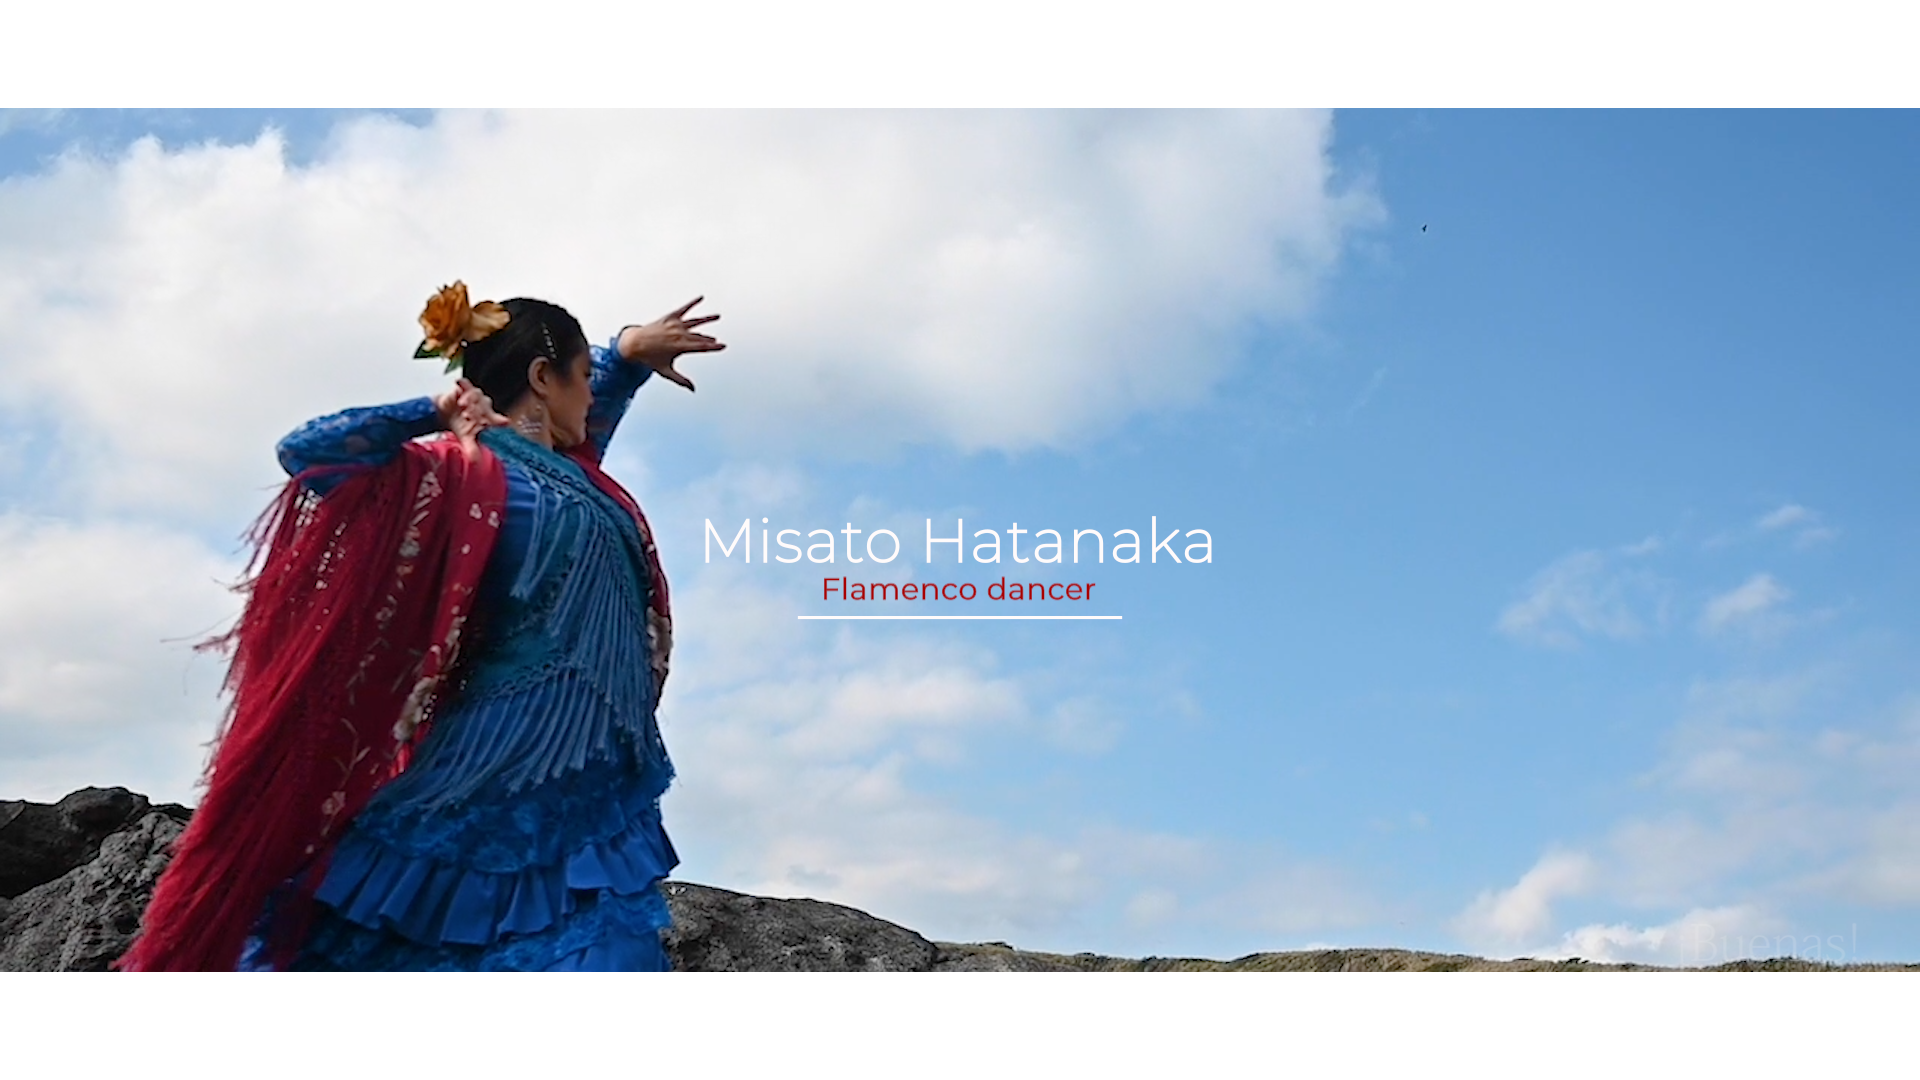 Promotional shoot by drone Misato Hatanaka (Flamenco dancer)